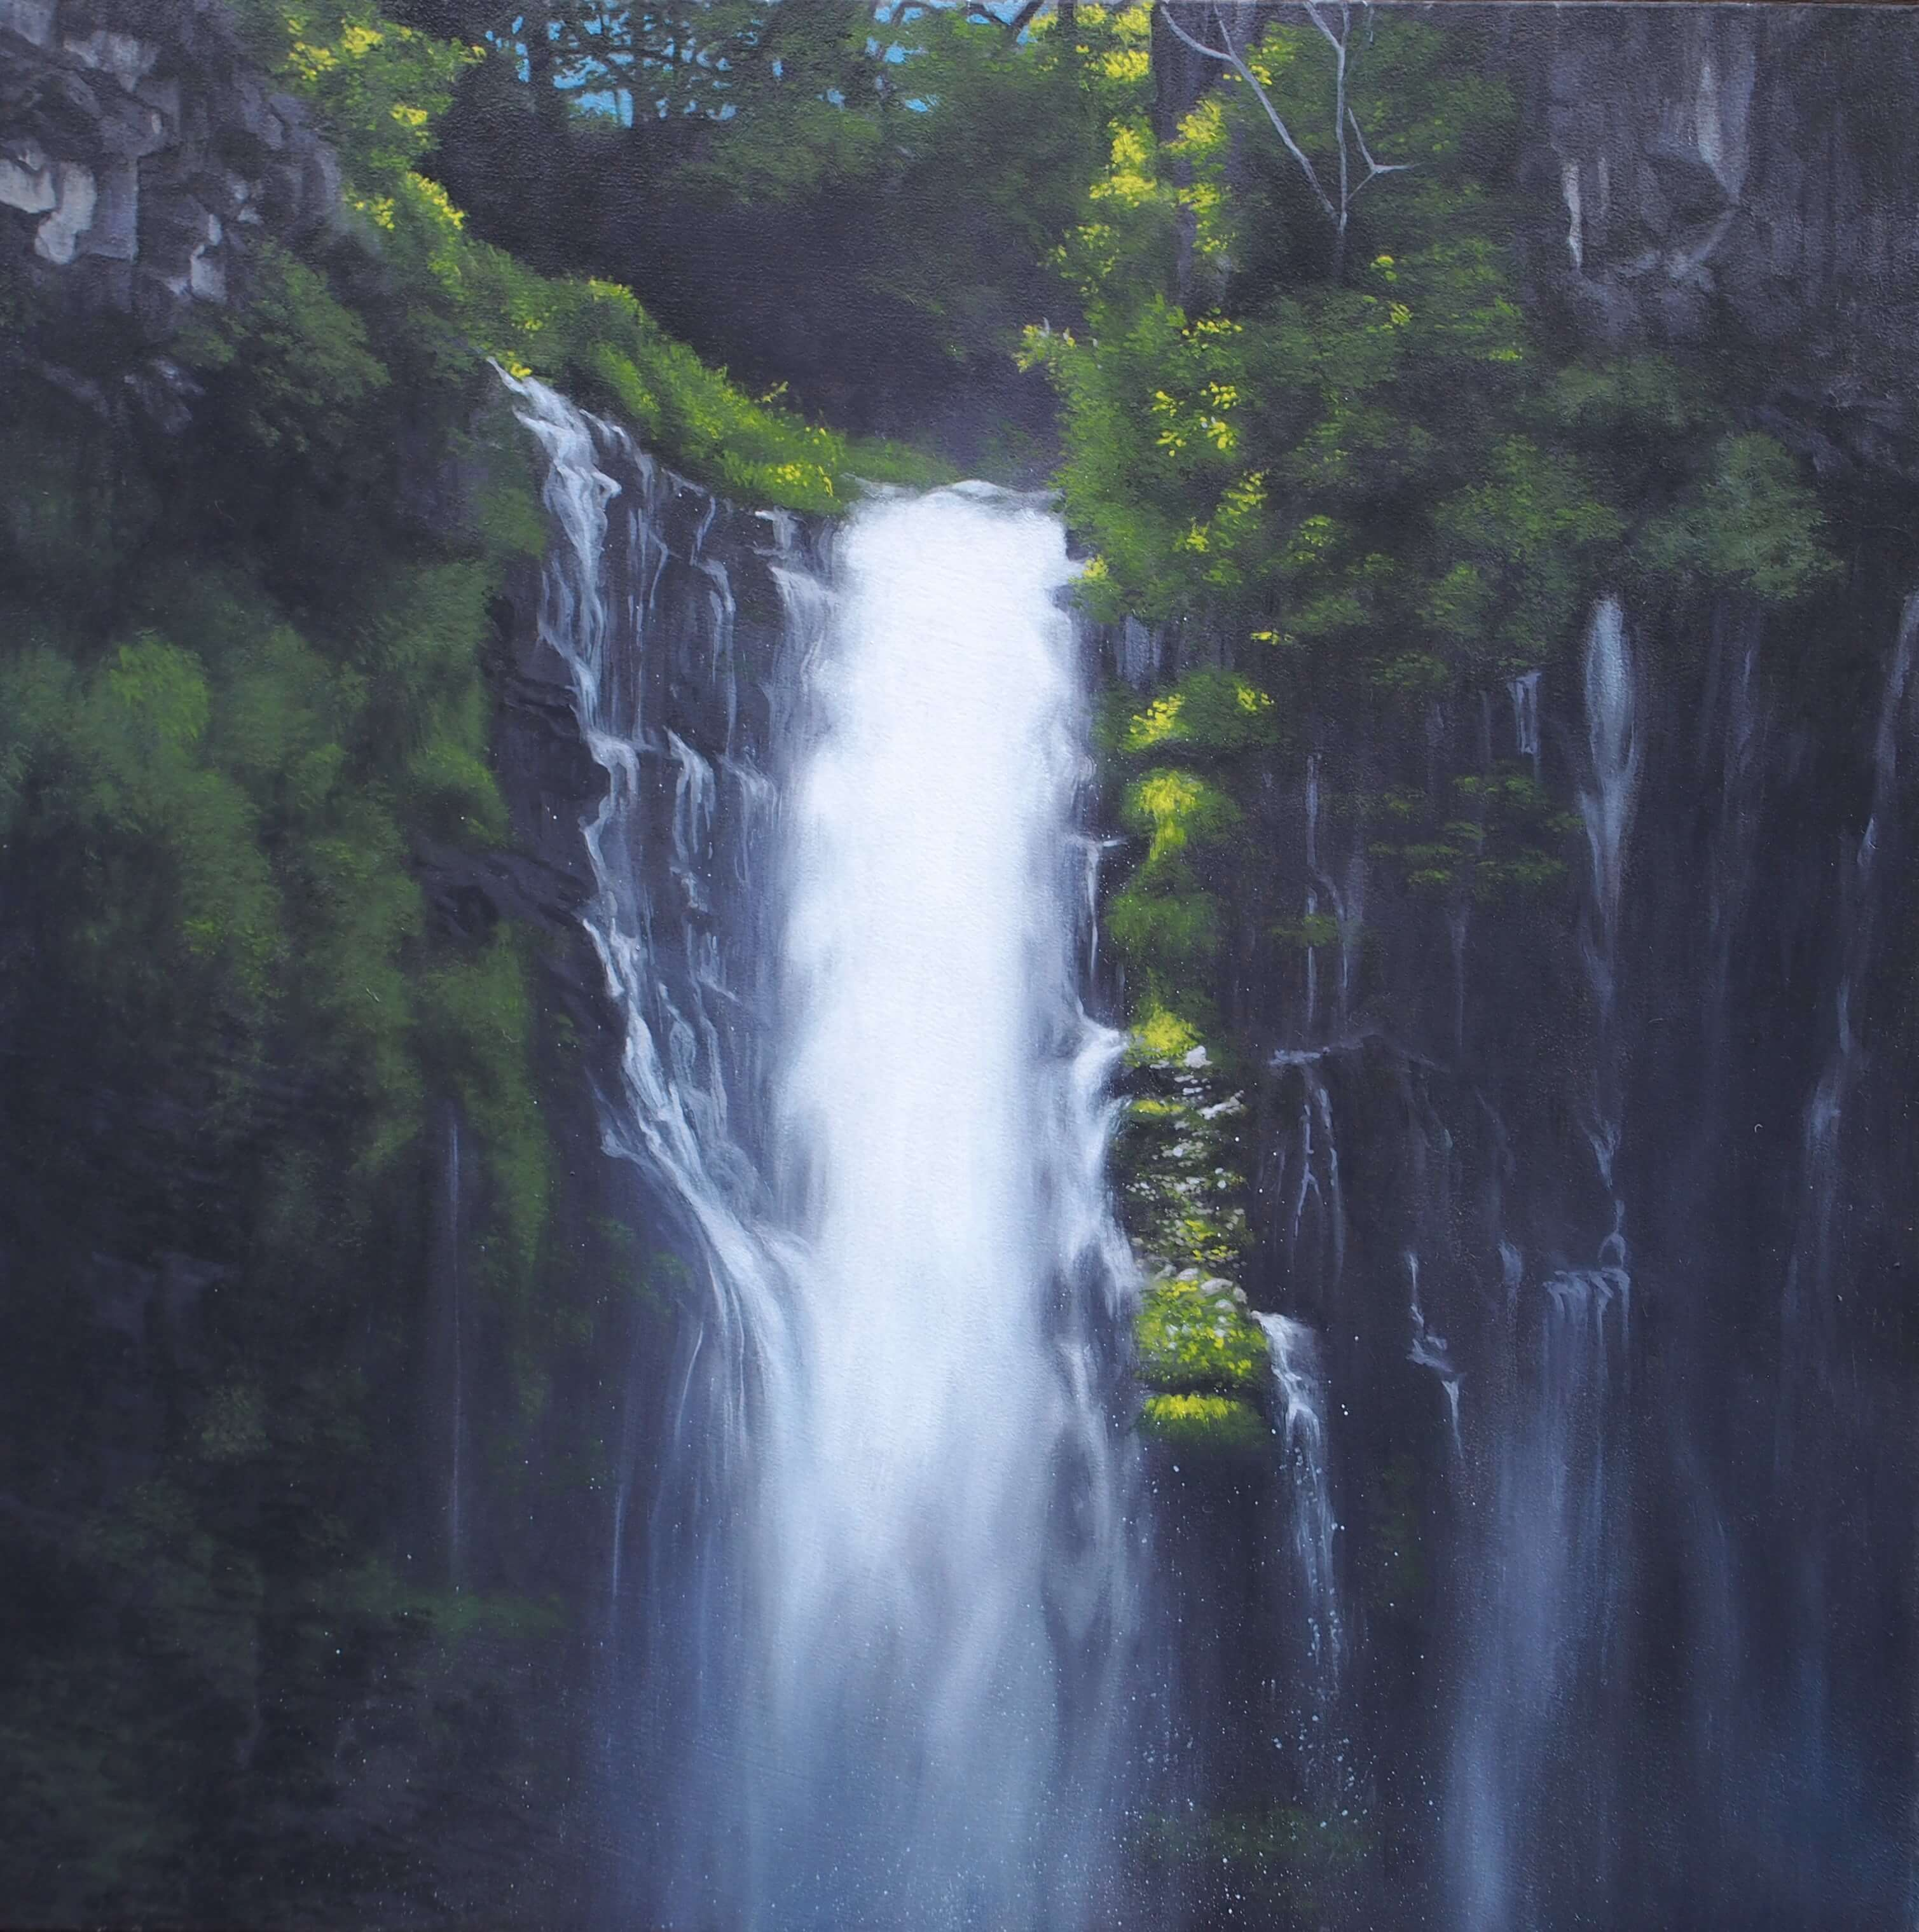 The sound of a waterfall -Shiraito no Taki-